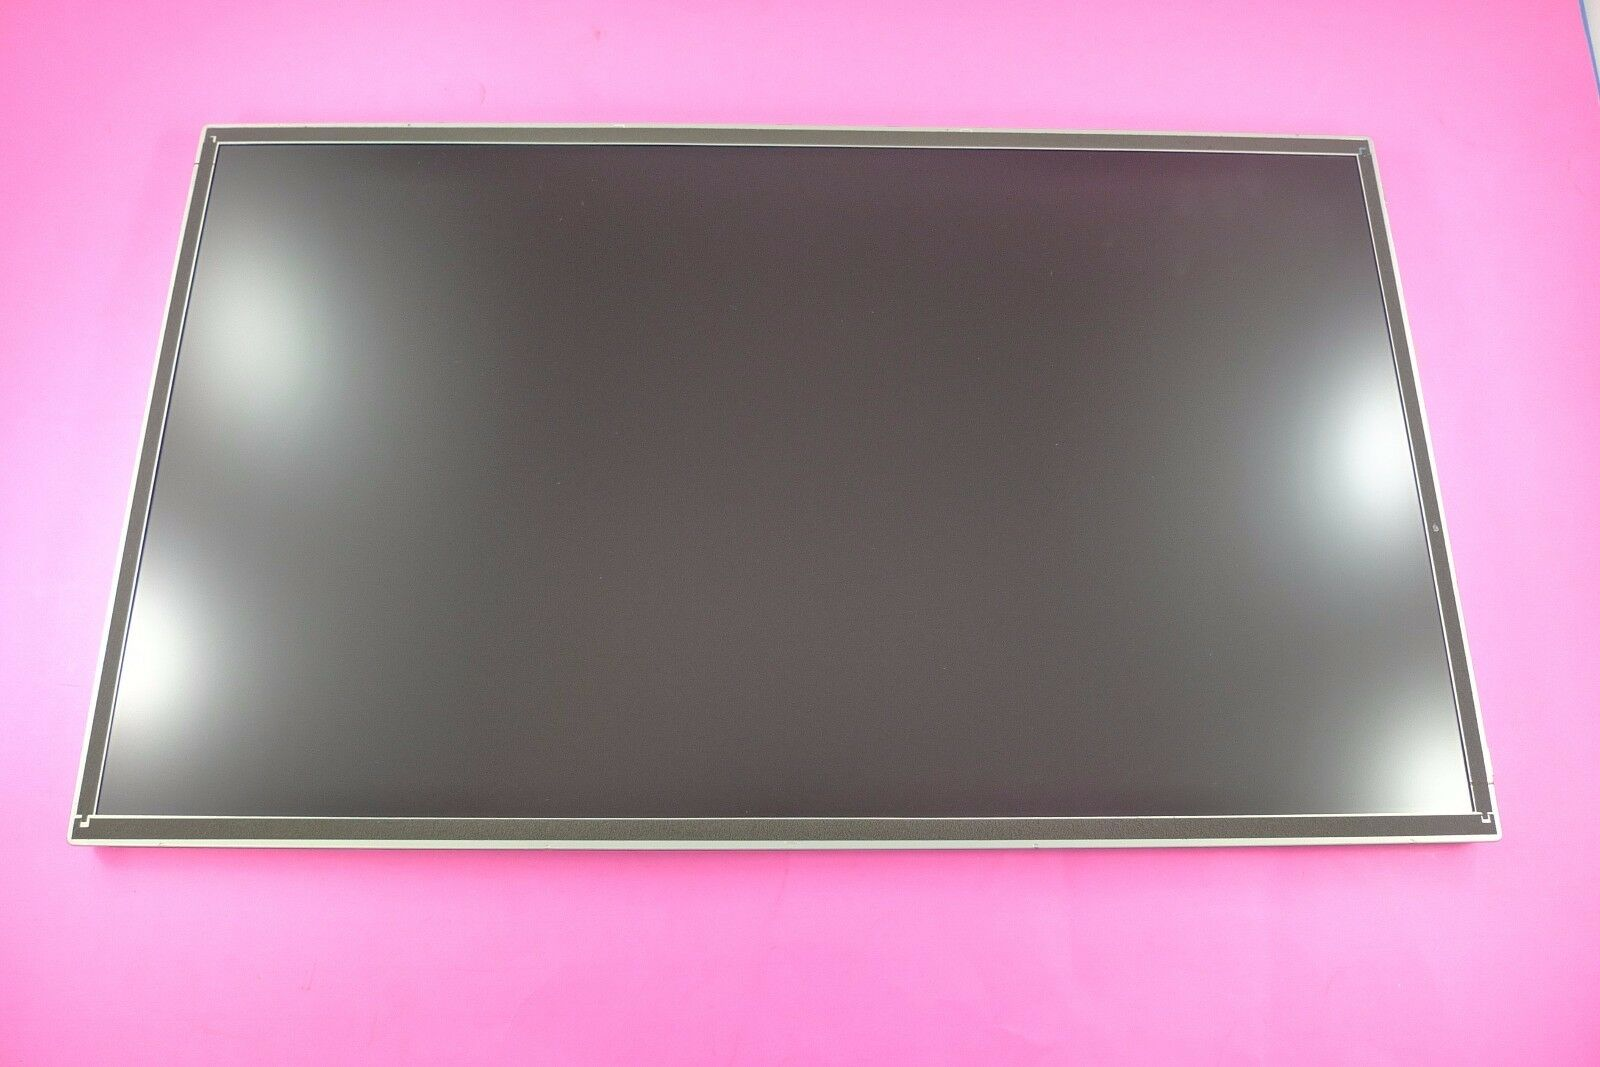 Genuine Dell Inspiron 3265 Aio Lcd Screen Lm215wf3 P72wf 6500 20 3064 Touch 1 Of 3 See More